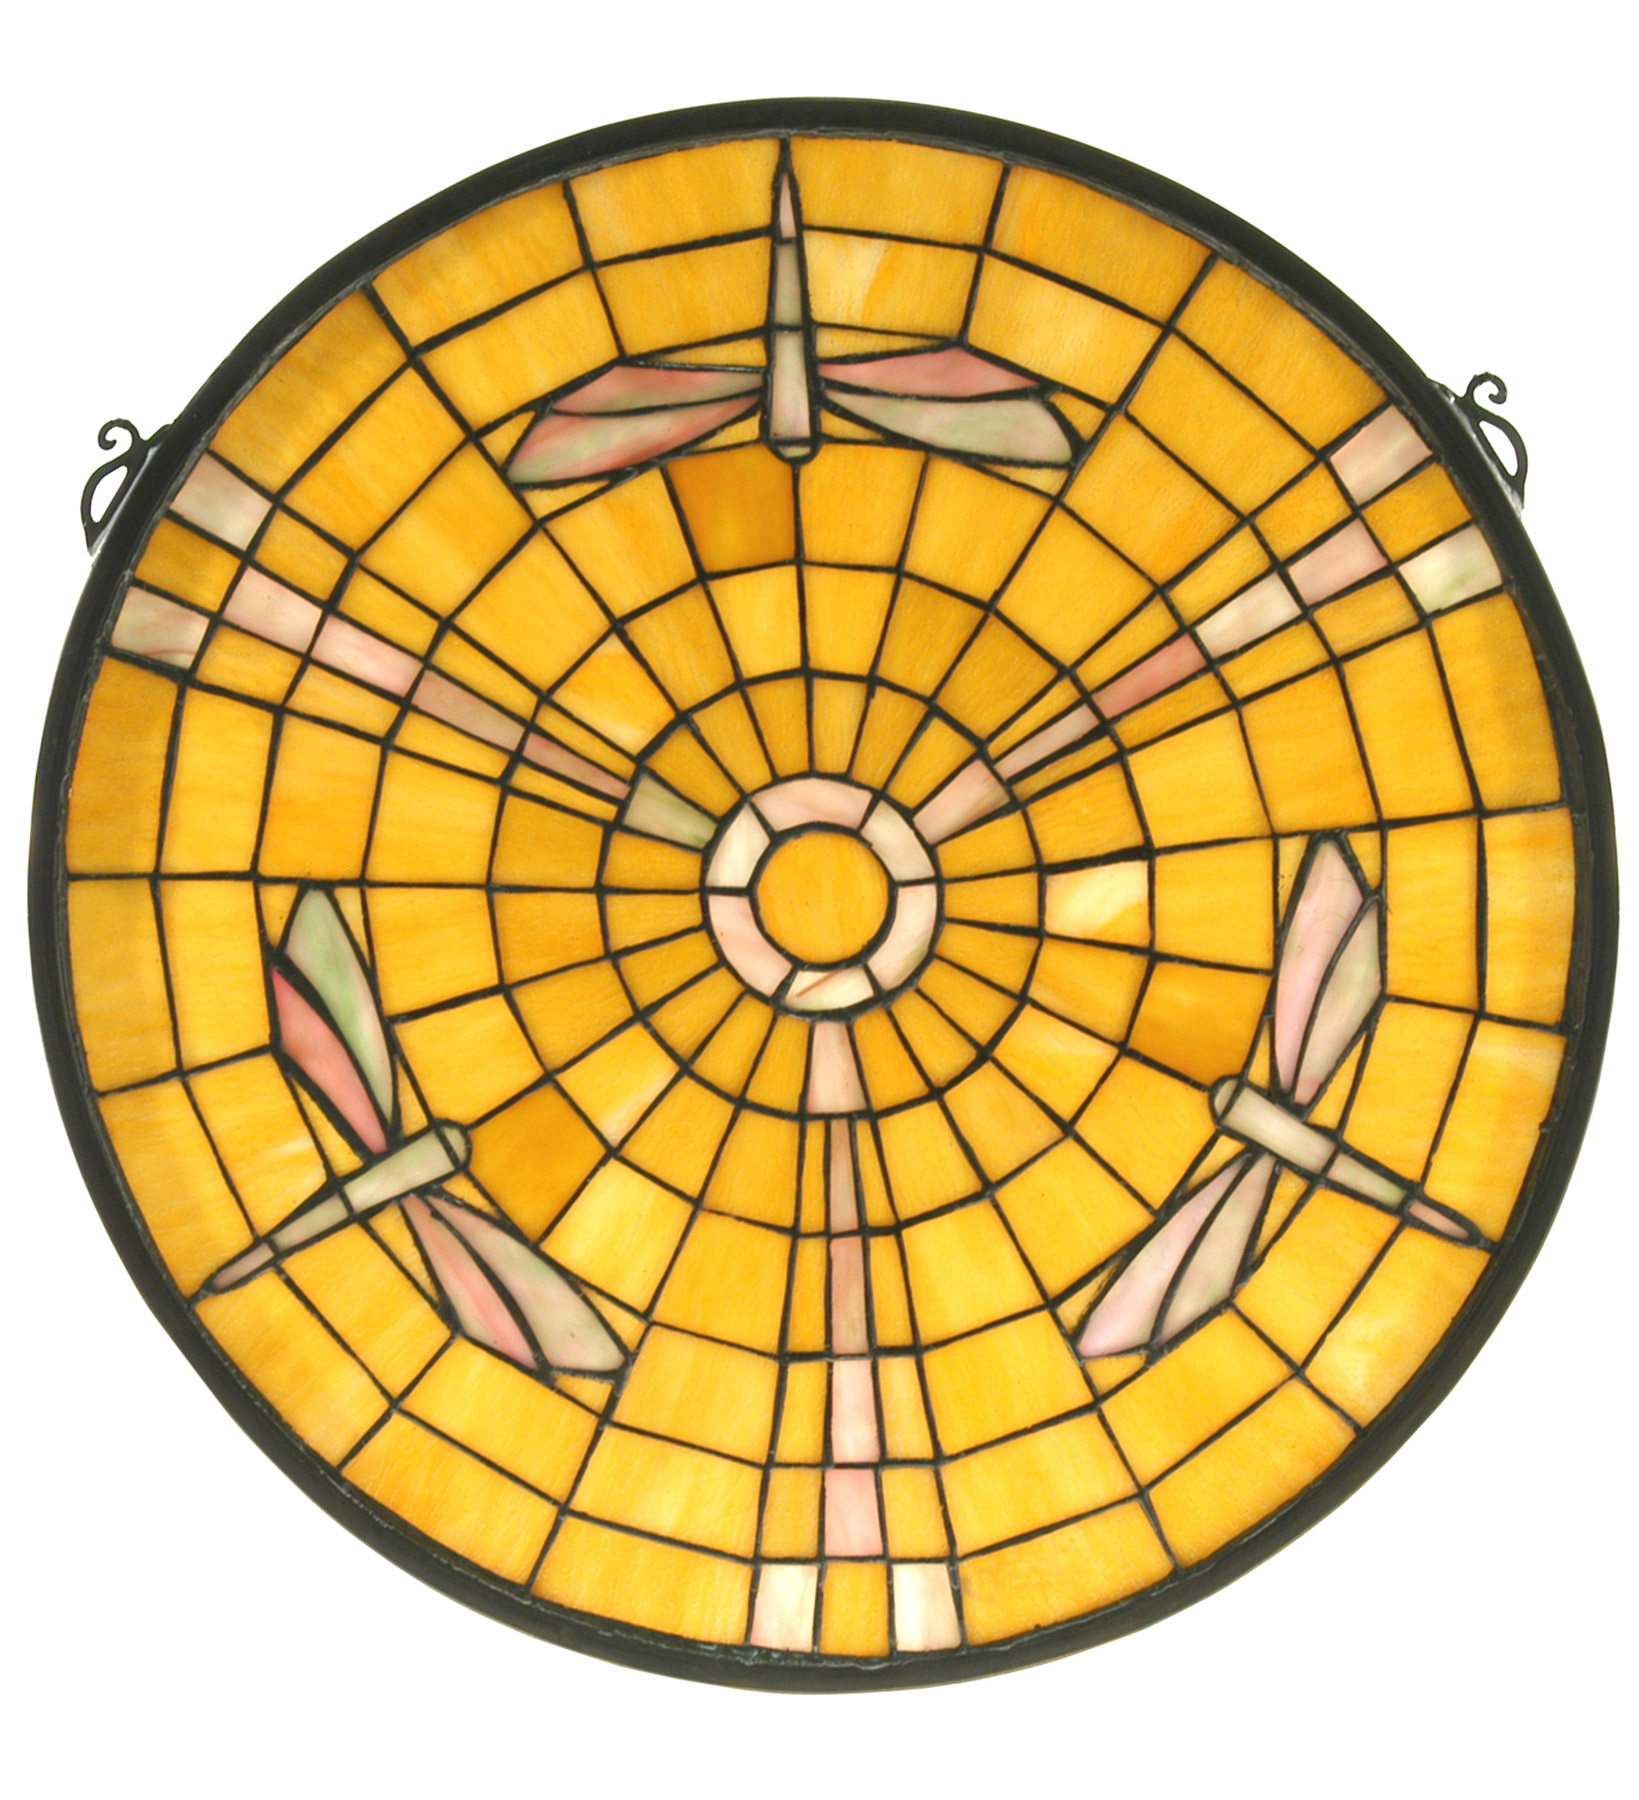 Dragonfly arts and crafts - Meyda 73233 Arts Crafts Dragonfly Stained Glass Window